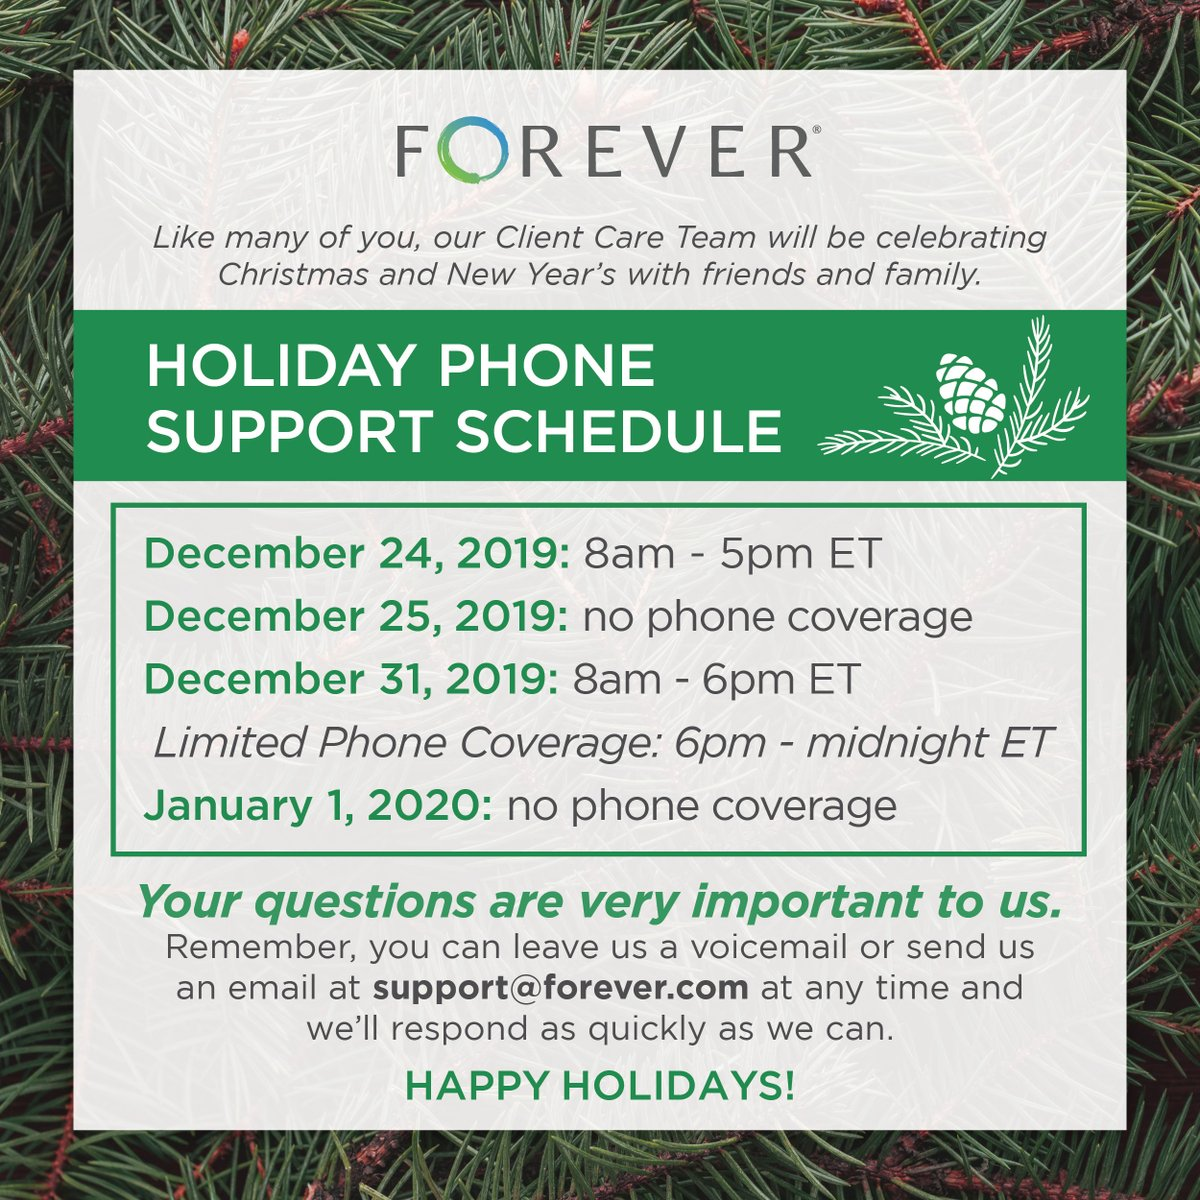 Happy Holidays! Here are the adjusted hours for FOREVER Support during the holidays this year - remember, you can always send an email or leave a voicemail if we're away from the phone. We will respond as quickly as we can!